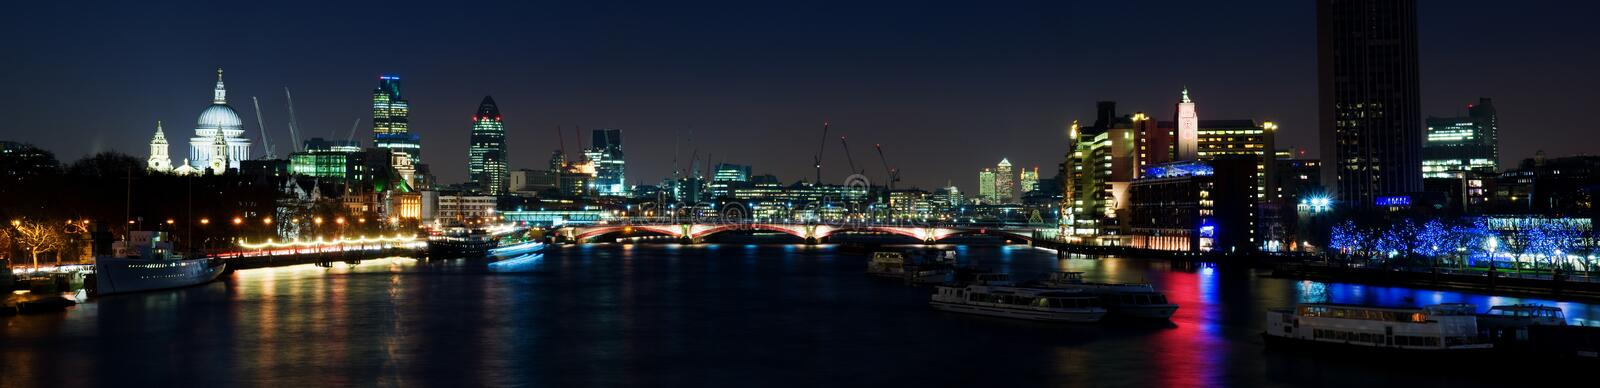 HUGE- City of London at night royalty free stock photography